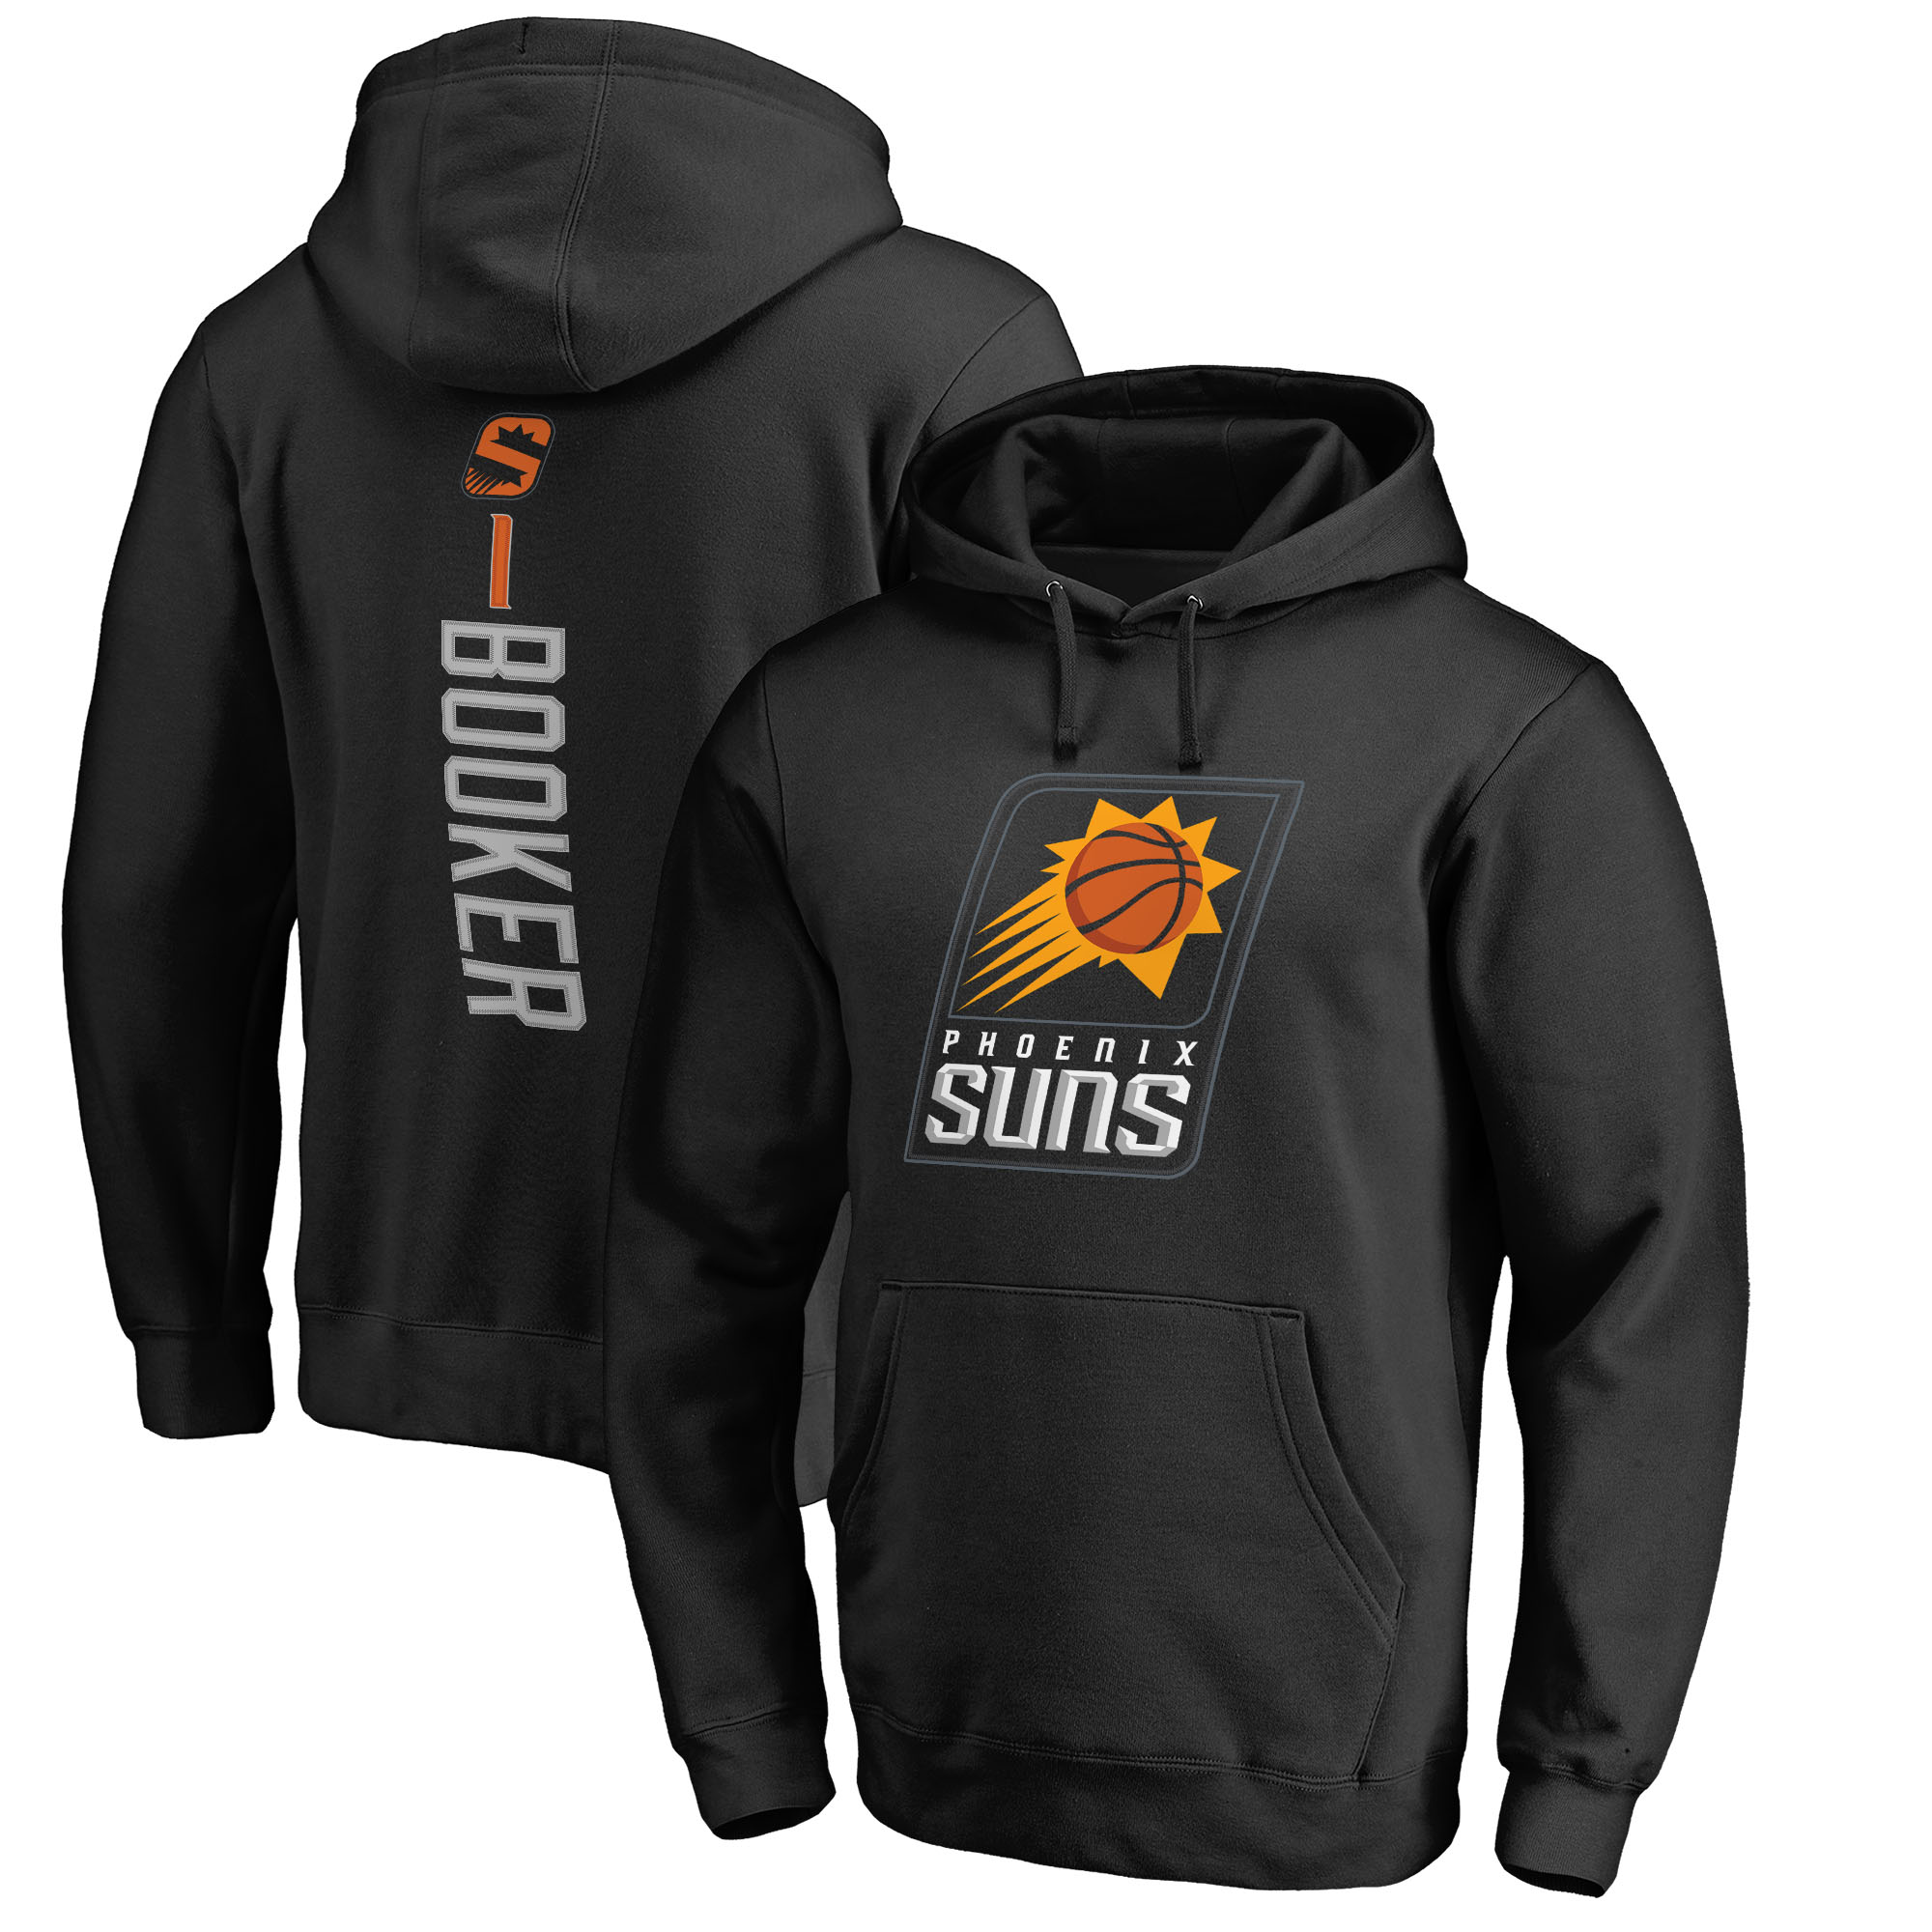 Devin Booker Phoenix Suns Fanatics Branded Backer Name & Number Pullover Hoodie - Black